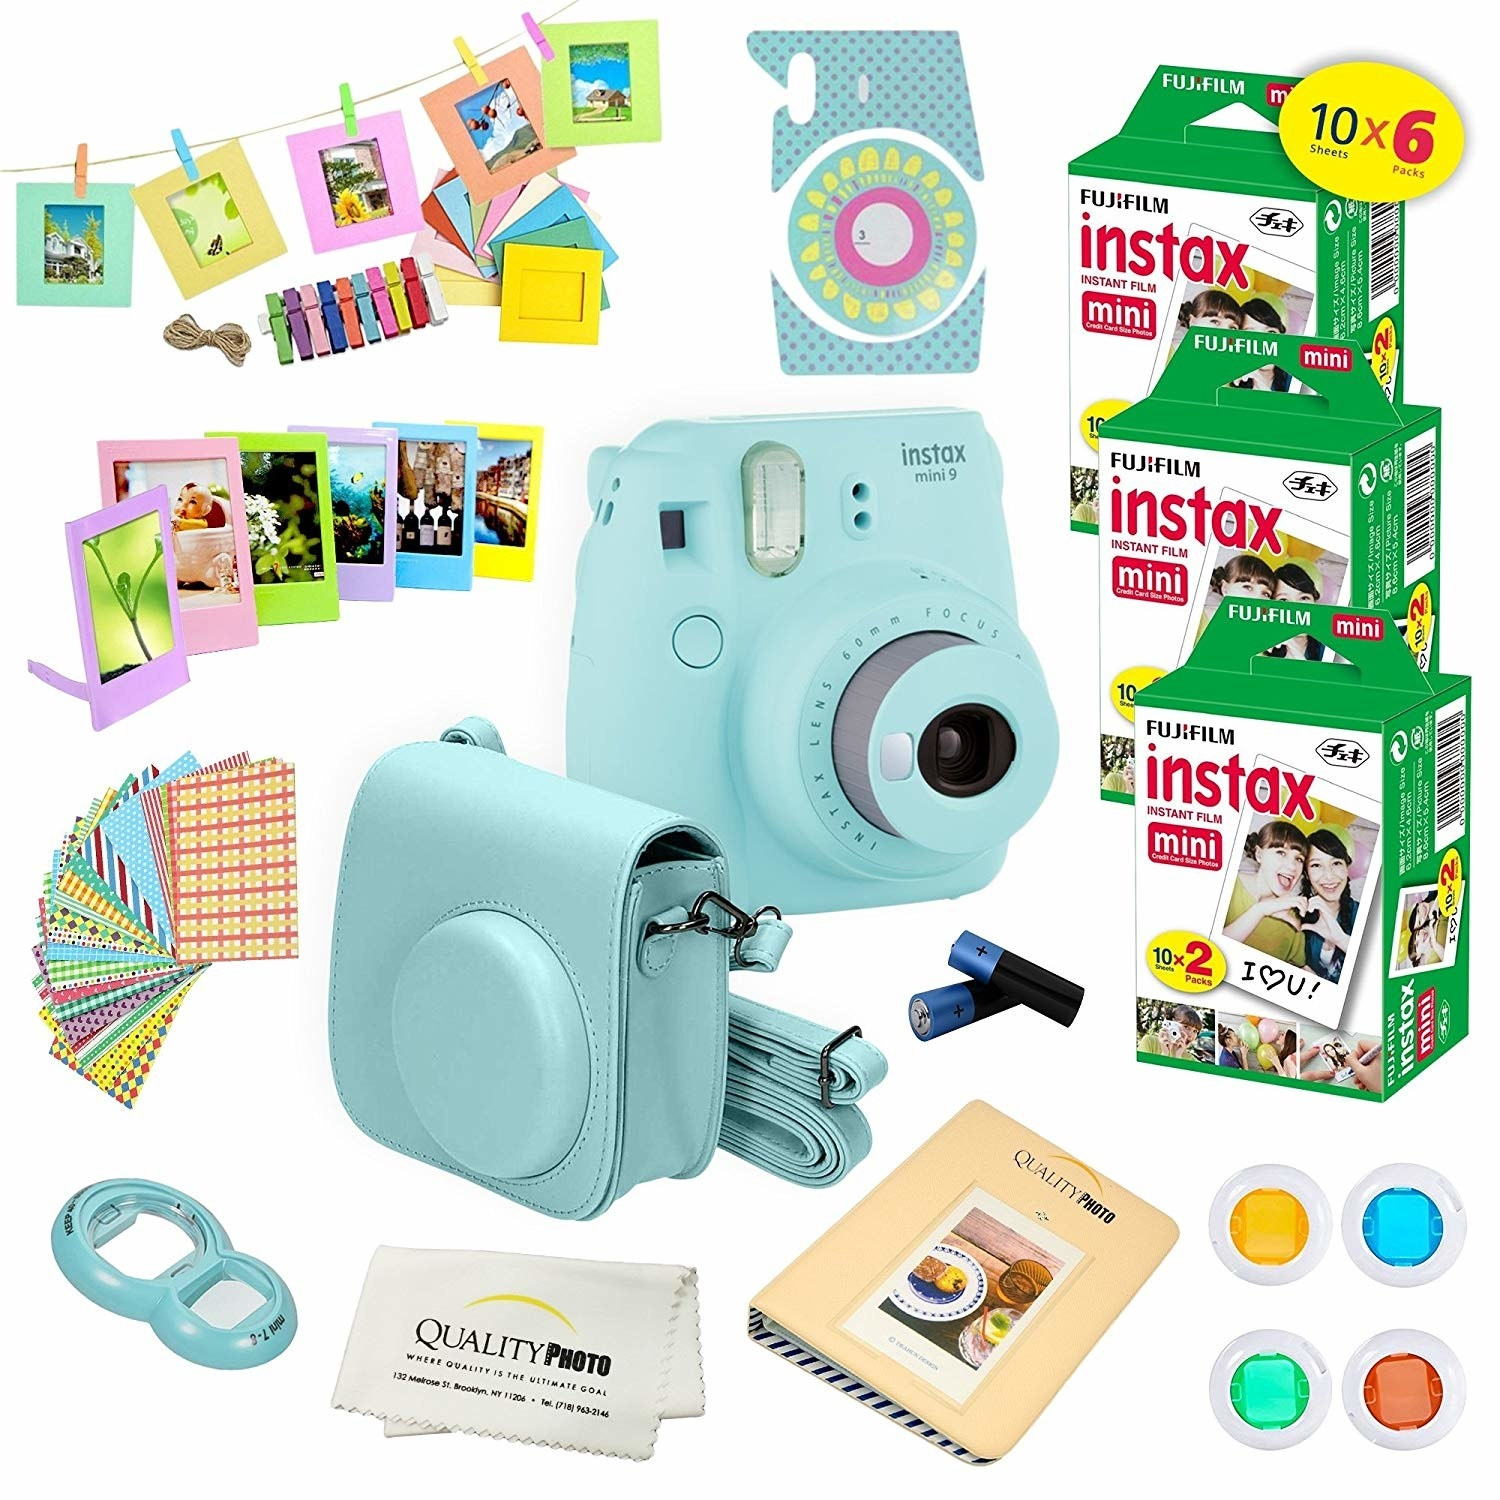 26 A Fujifilm Instax Mini Instant Camera For The Sister Who Is Always Asking Fam To Pose Photos But Then Forgets Upload Them Facebook